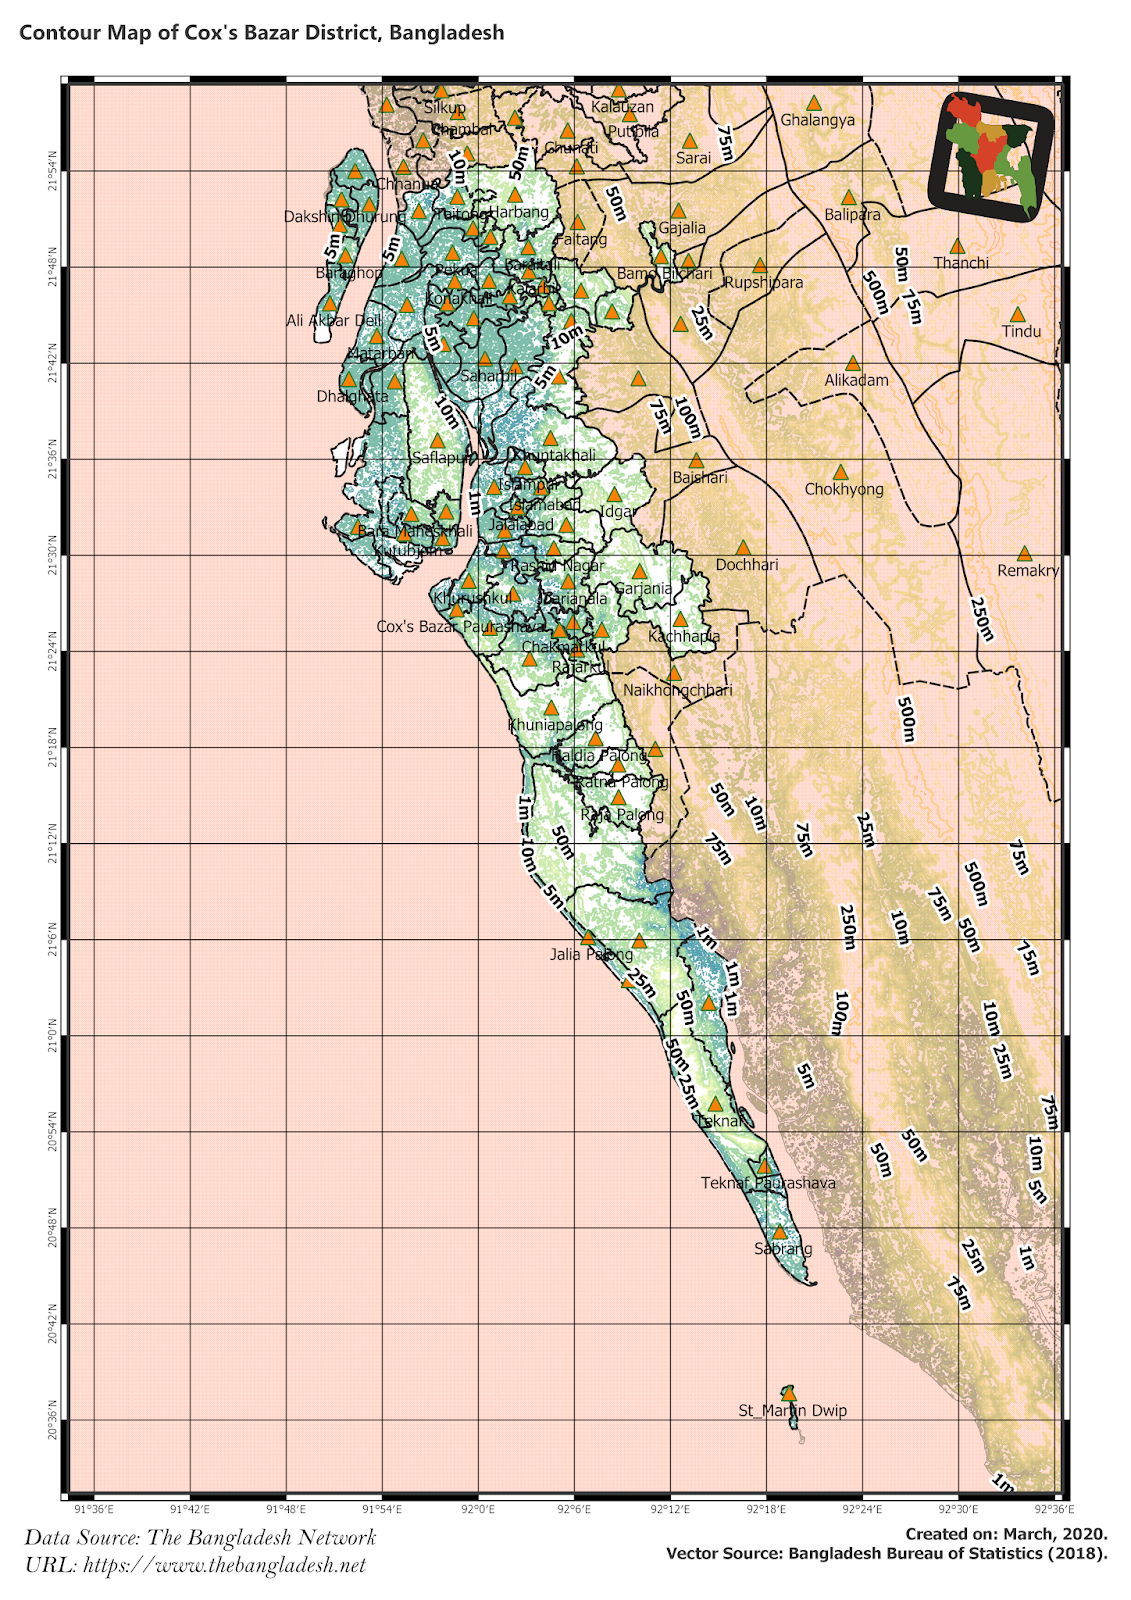 Elevation Map of Cox's Bazar District of Bangladesh